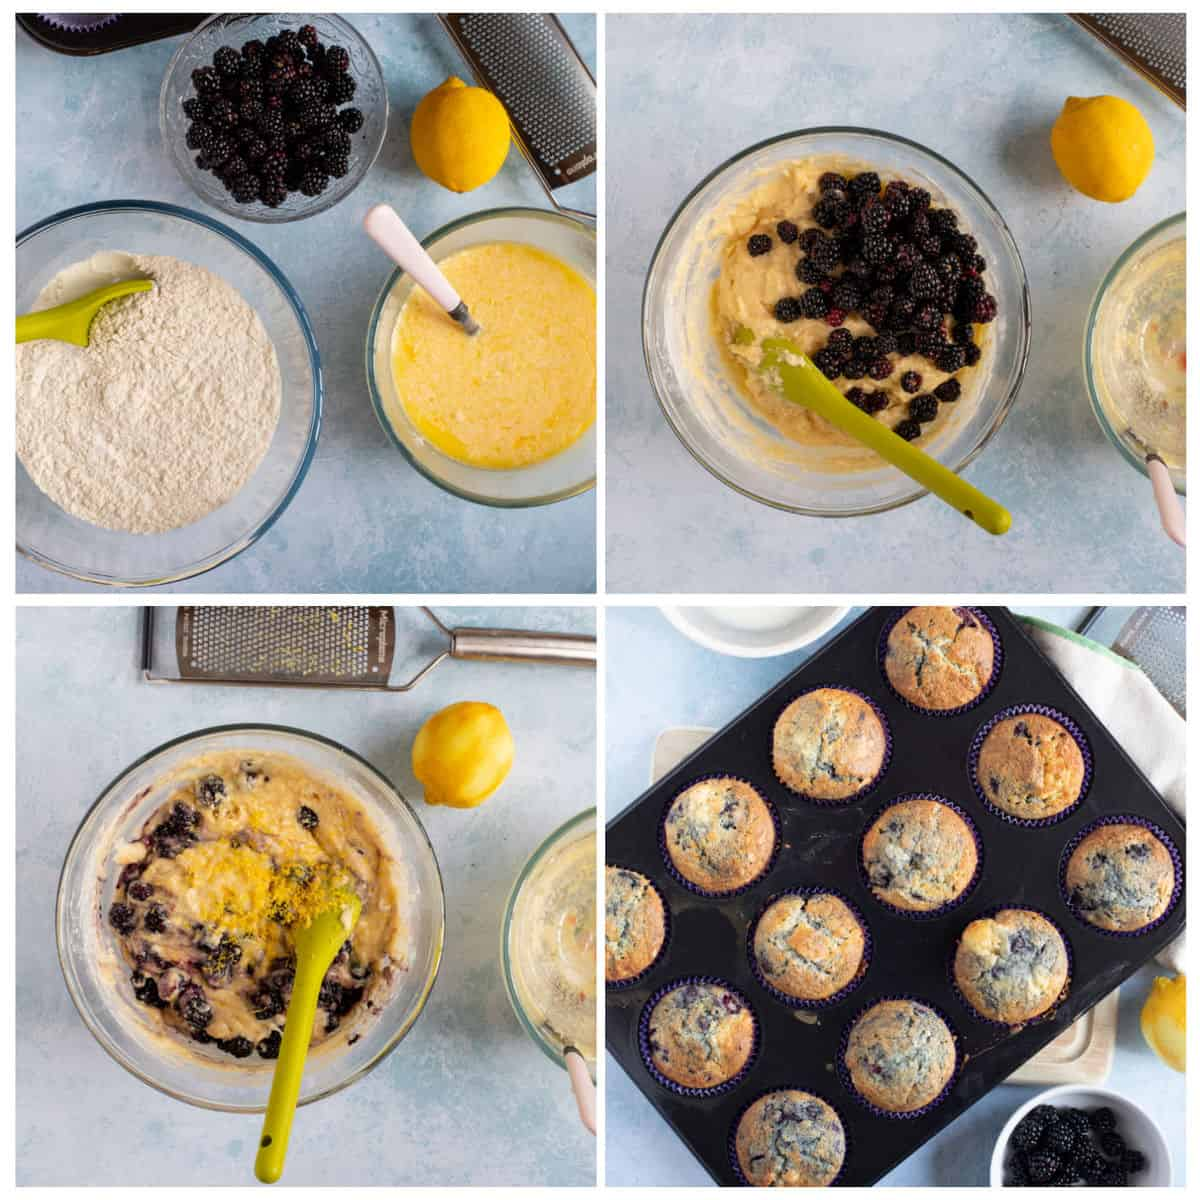 step by step photo instructions for making the muffins